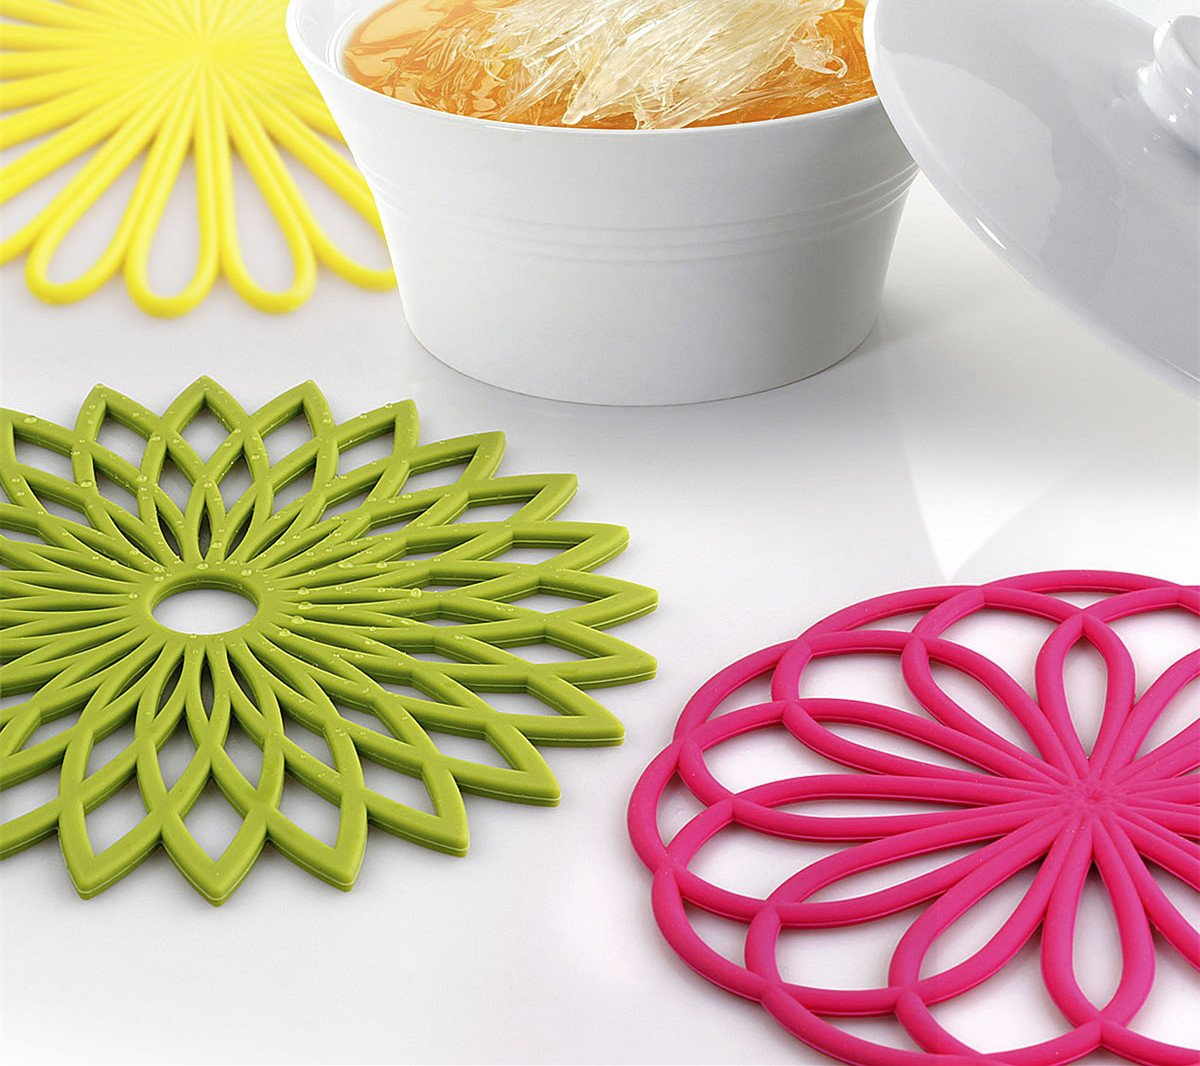 ME.FAN 3 Set Silicone Multi-Use Flower Trivet Mat - Premium Quality Insulated Flexible Durable Non Slip Coasters Hot Pads Yellow by ME.FAN (Image #5)